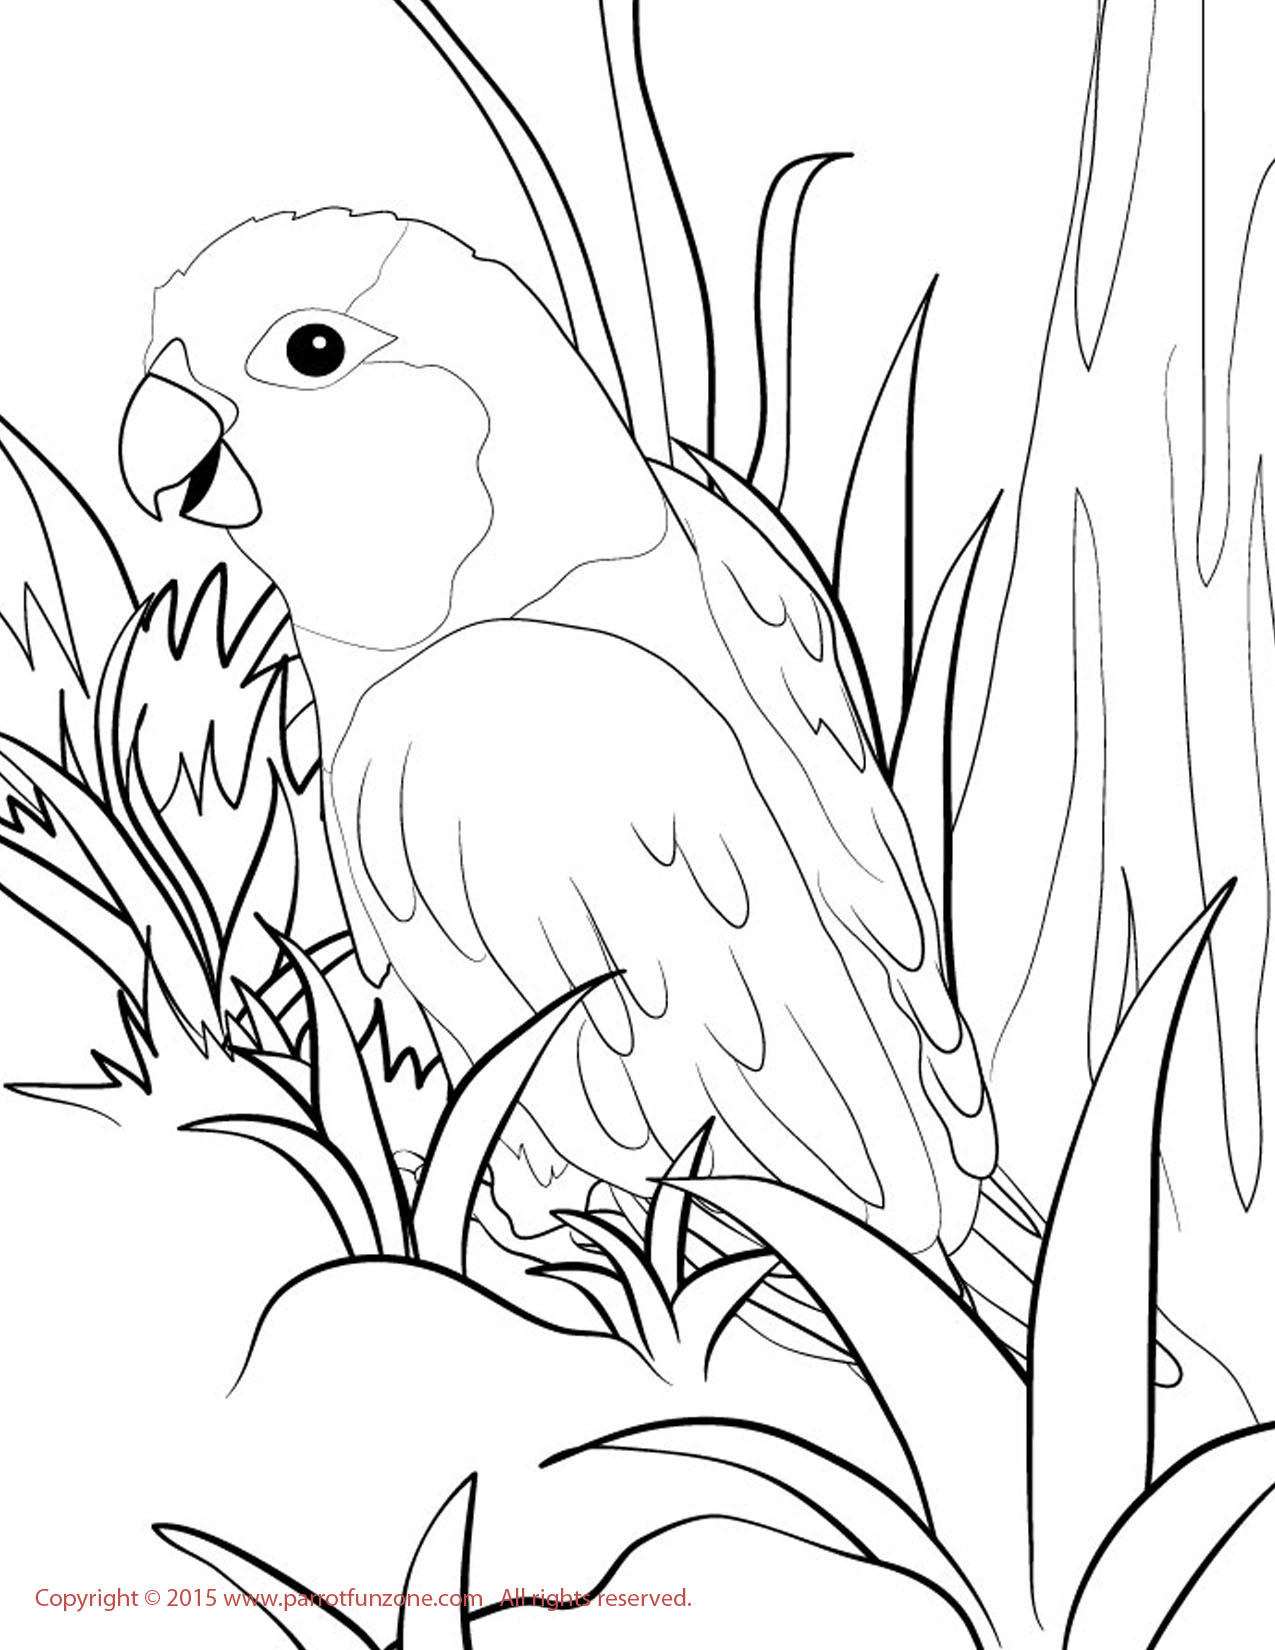 parrots pictures to colour cute animal coloring pages best coloring pages for kids parrots pictures to colour